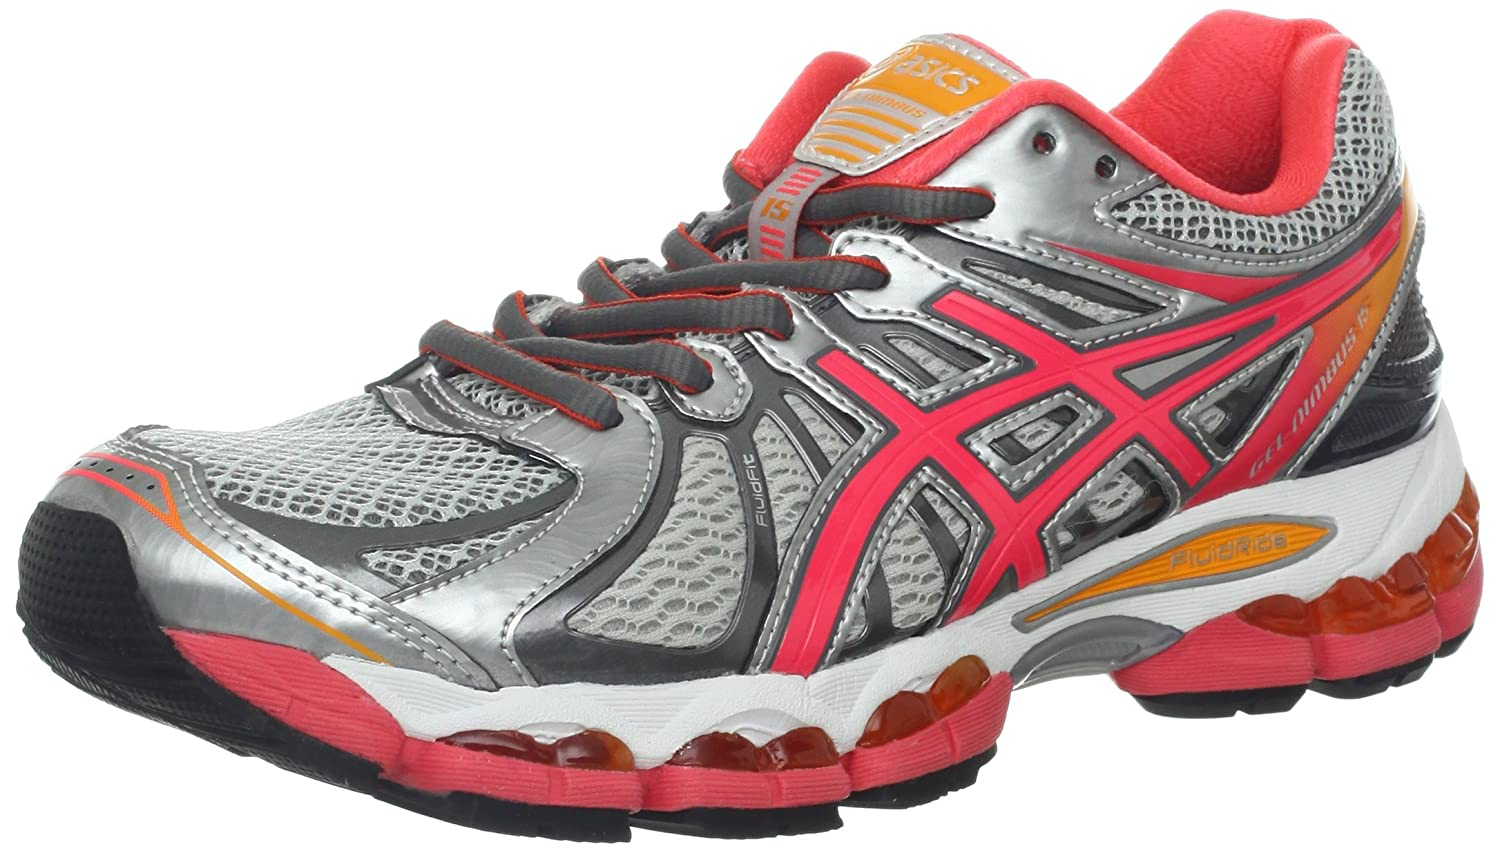 asics gel nimbus 7 running shoe